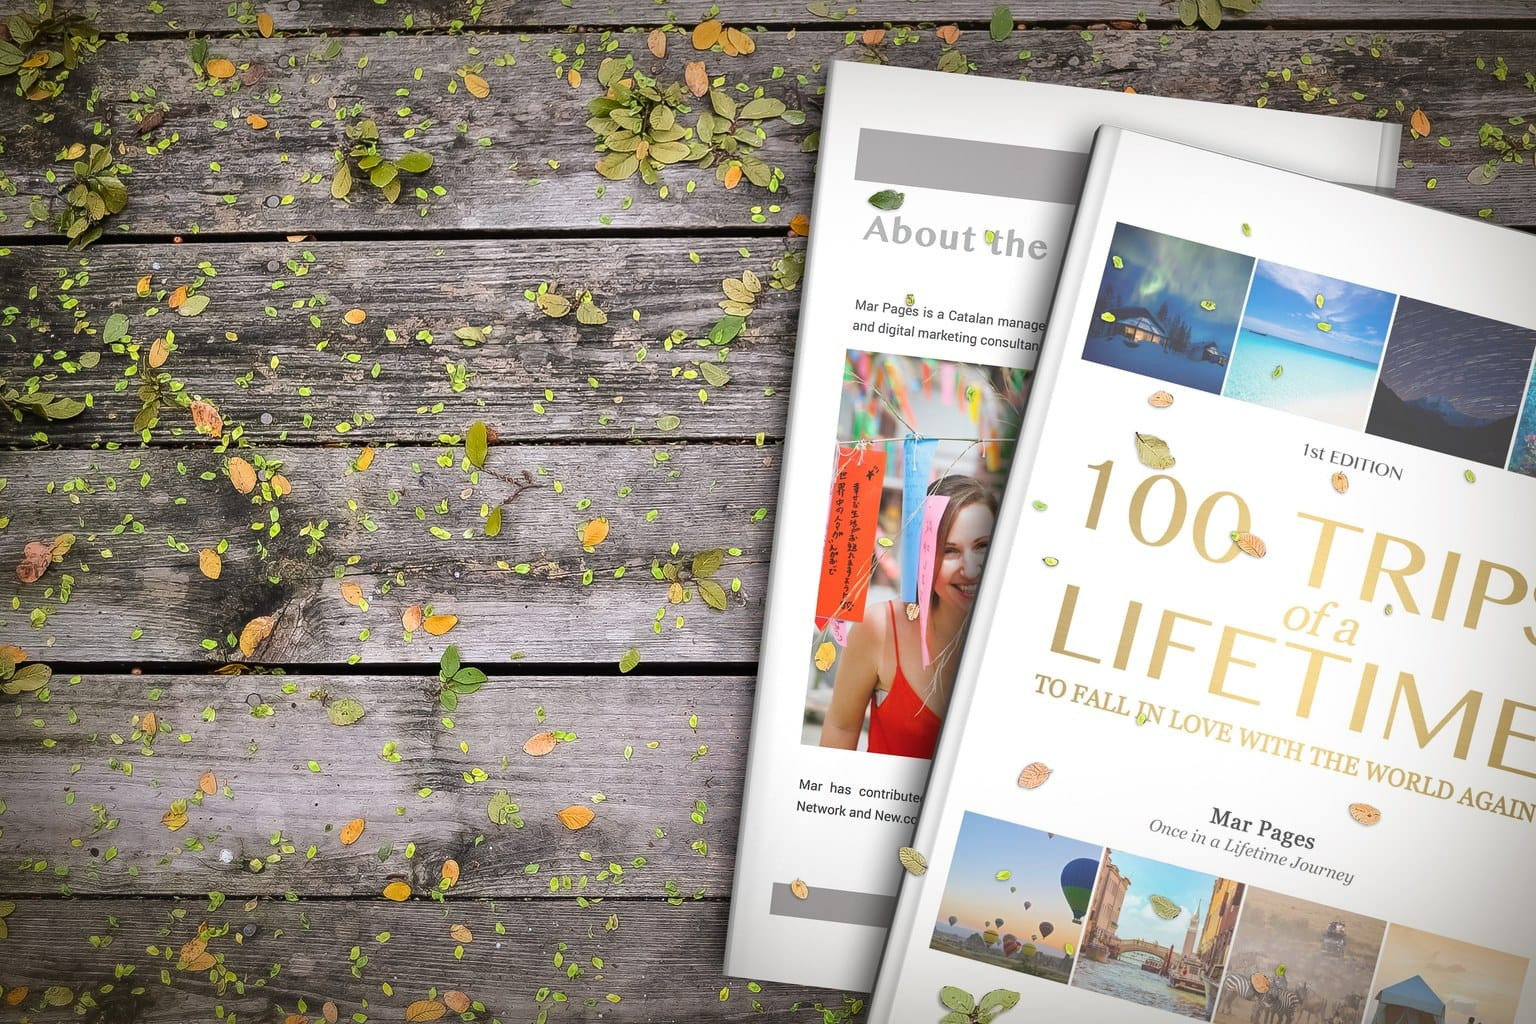 100 trips of a lifetime book